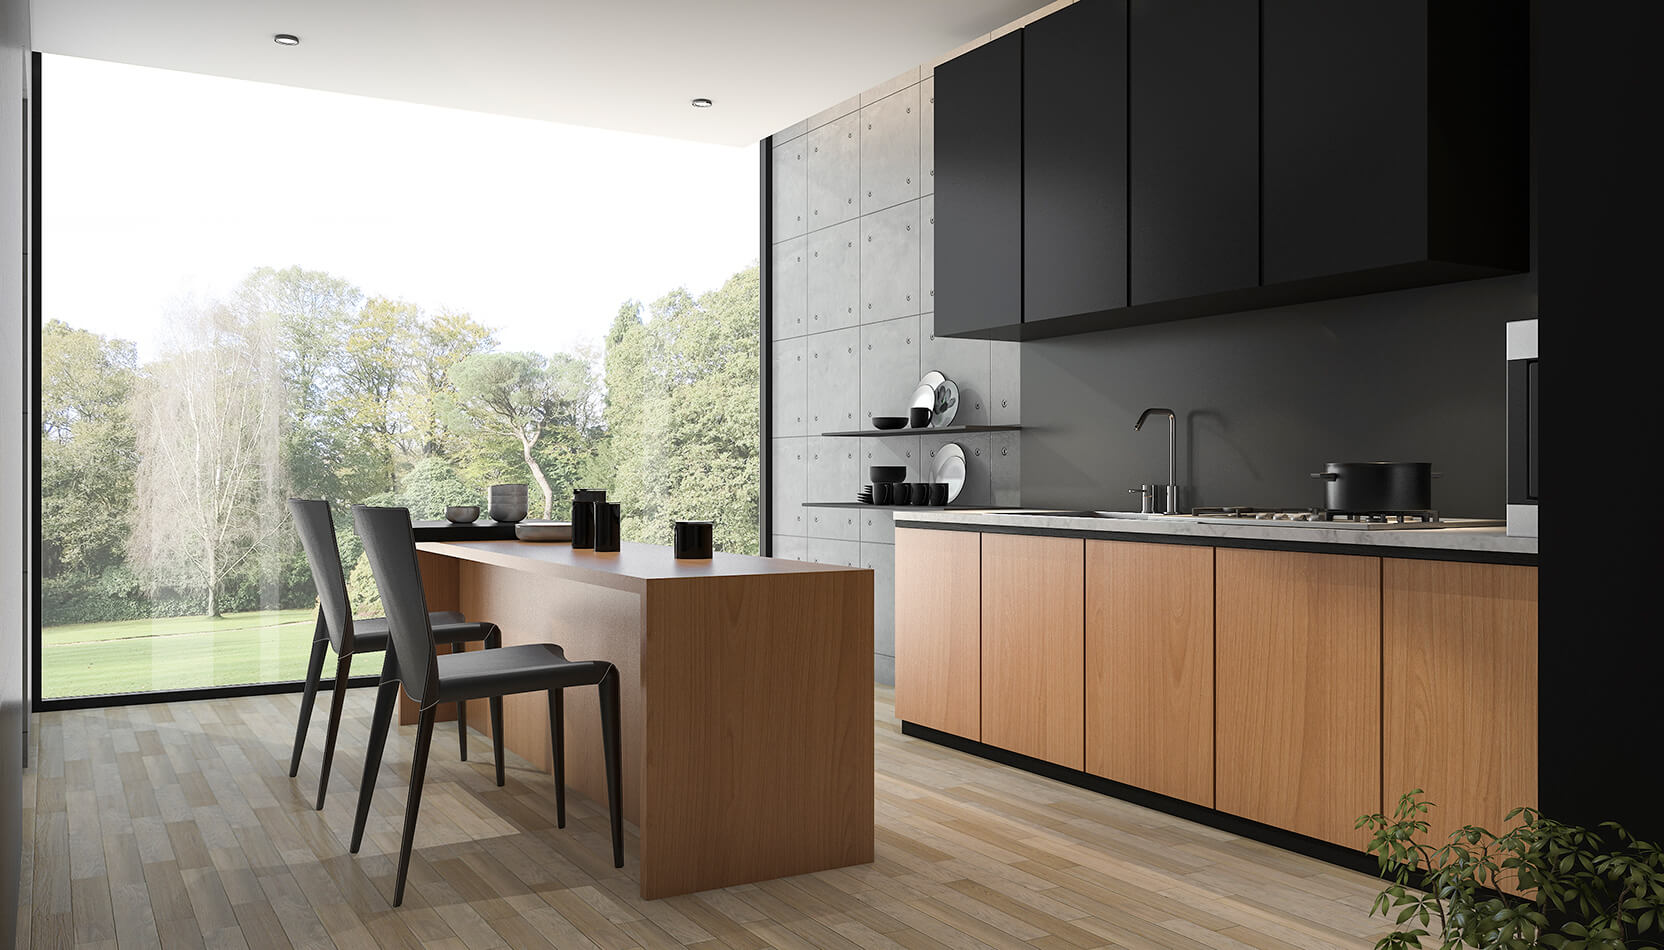 The Top 10 Kitchen Cabinet Countertop Trends For 2019 Some Might Surprise You